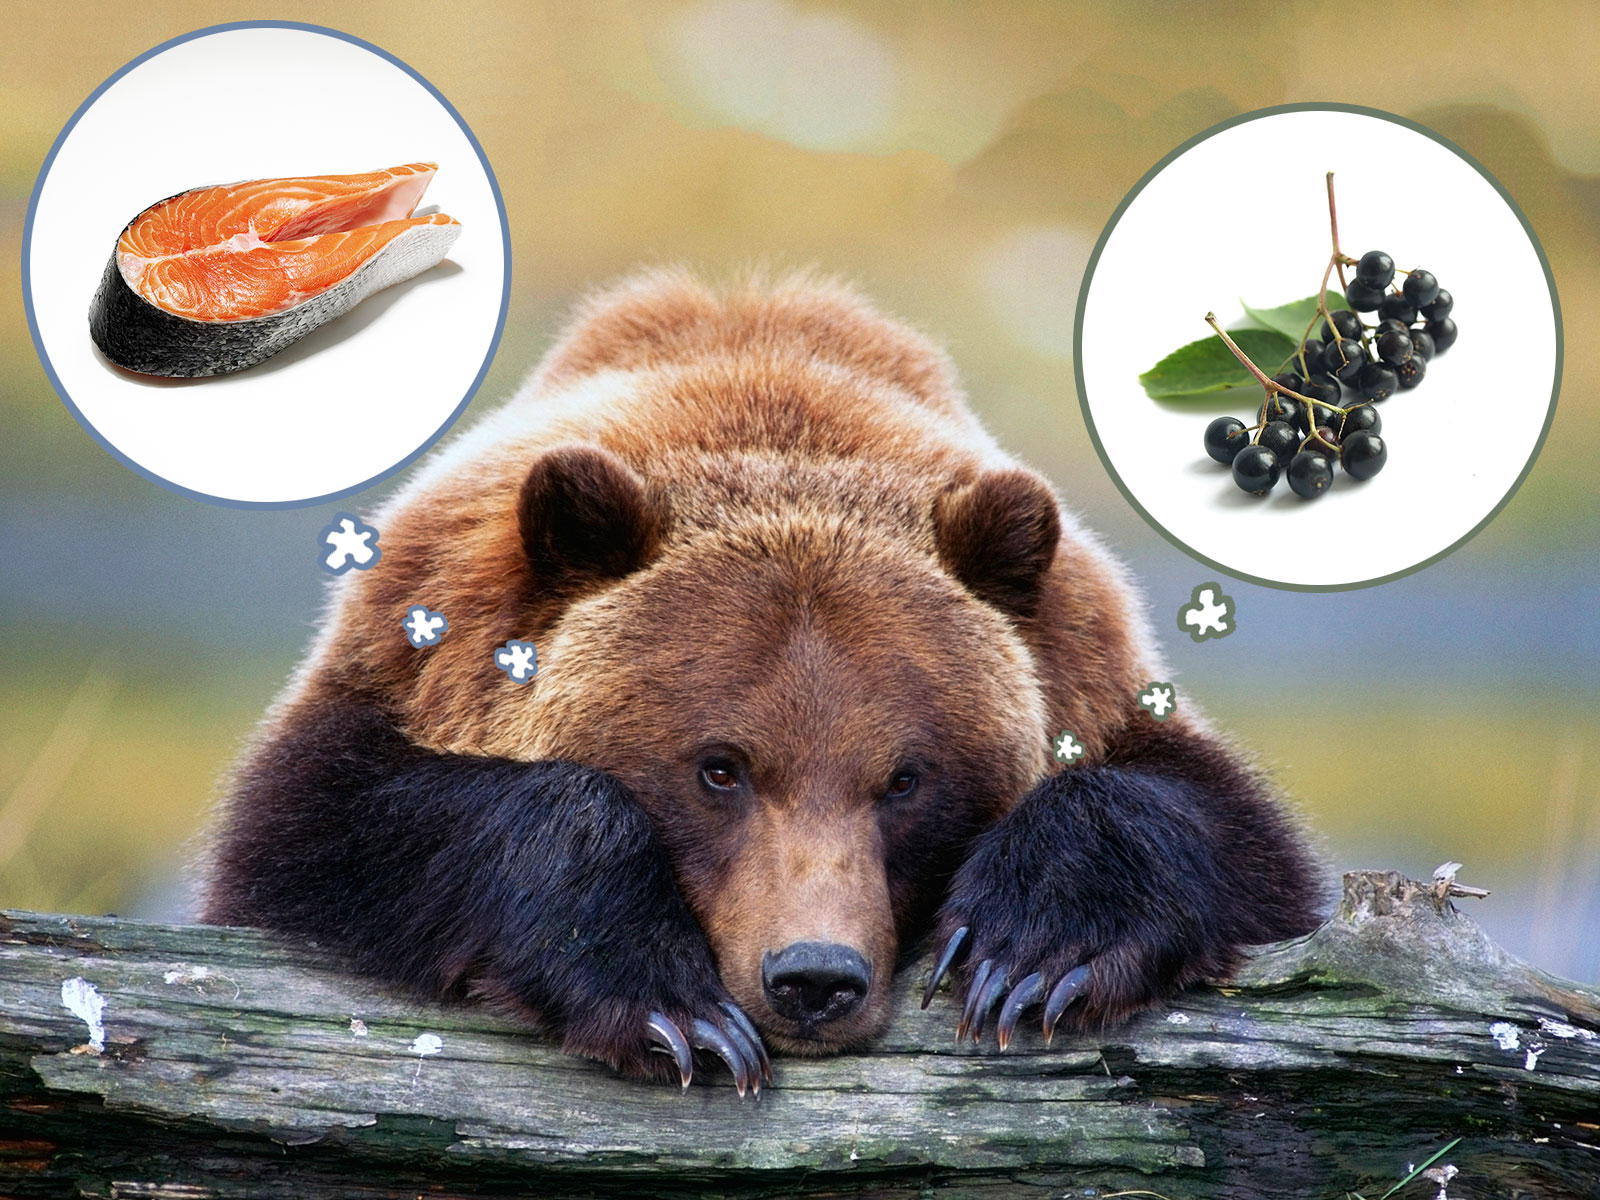 bears becoming vegetarian by eating elderberry instead of salmon